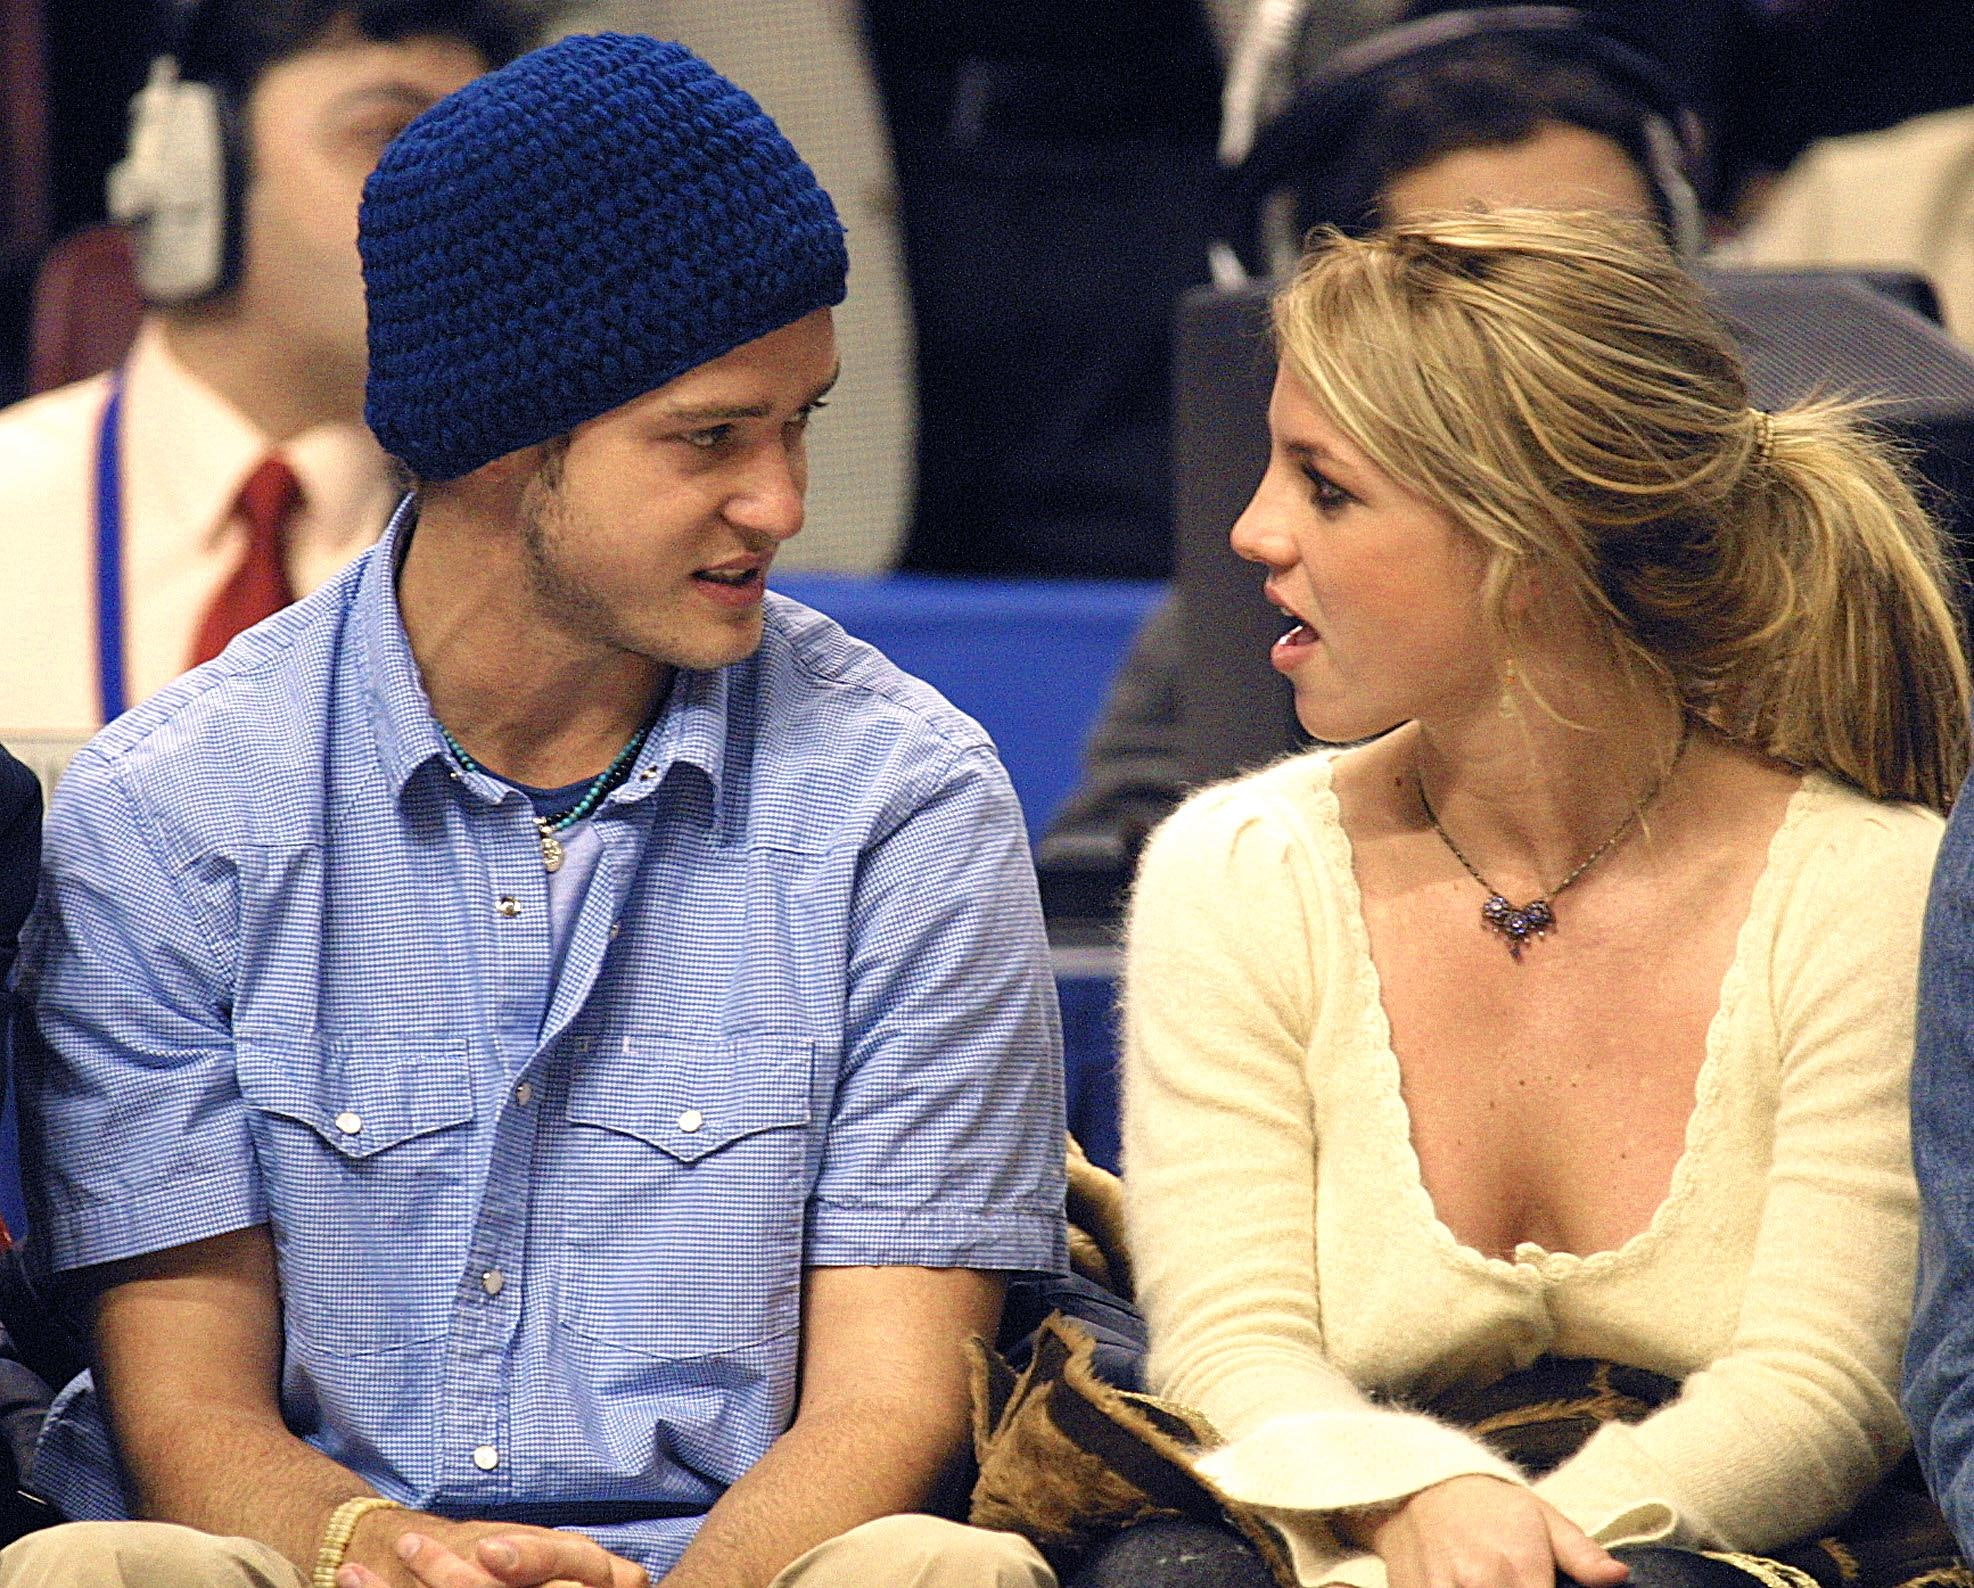 Who Was Britney Spears Married To A Breakdown Of All Her Major Boyfriends Husbands And Fiances